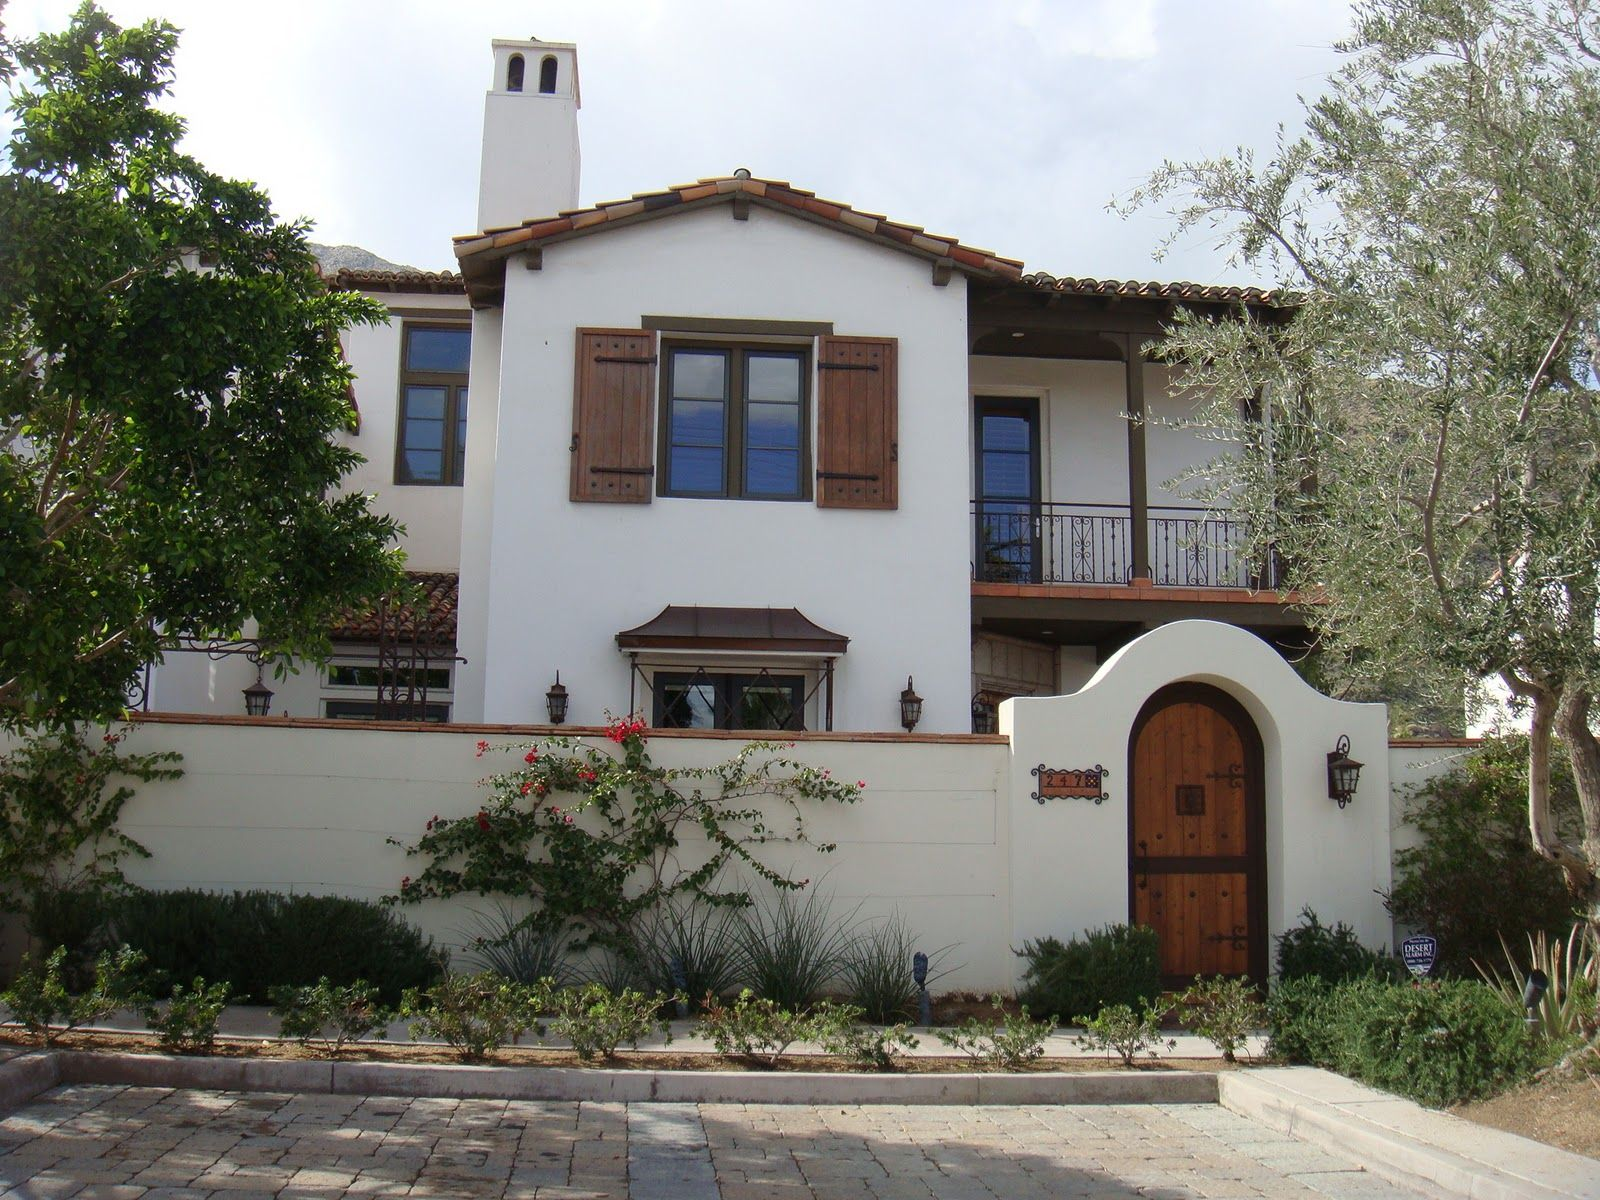 Uncategorized Images Of Spanish Style Homes modern spanish mission style homes of i personally am torn between